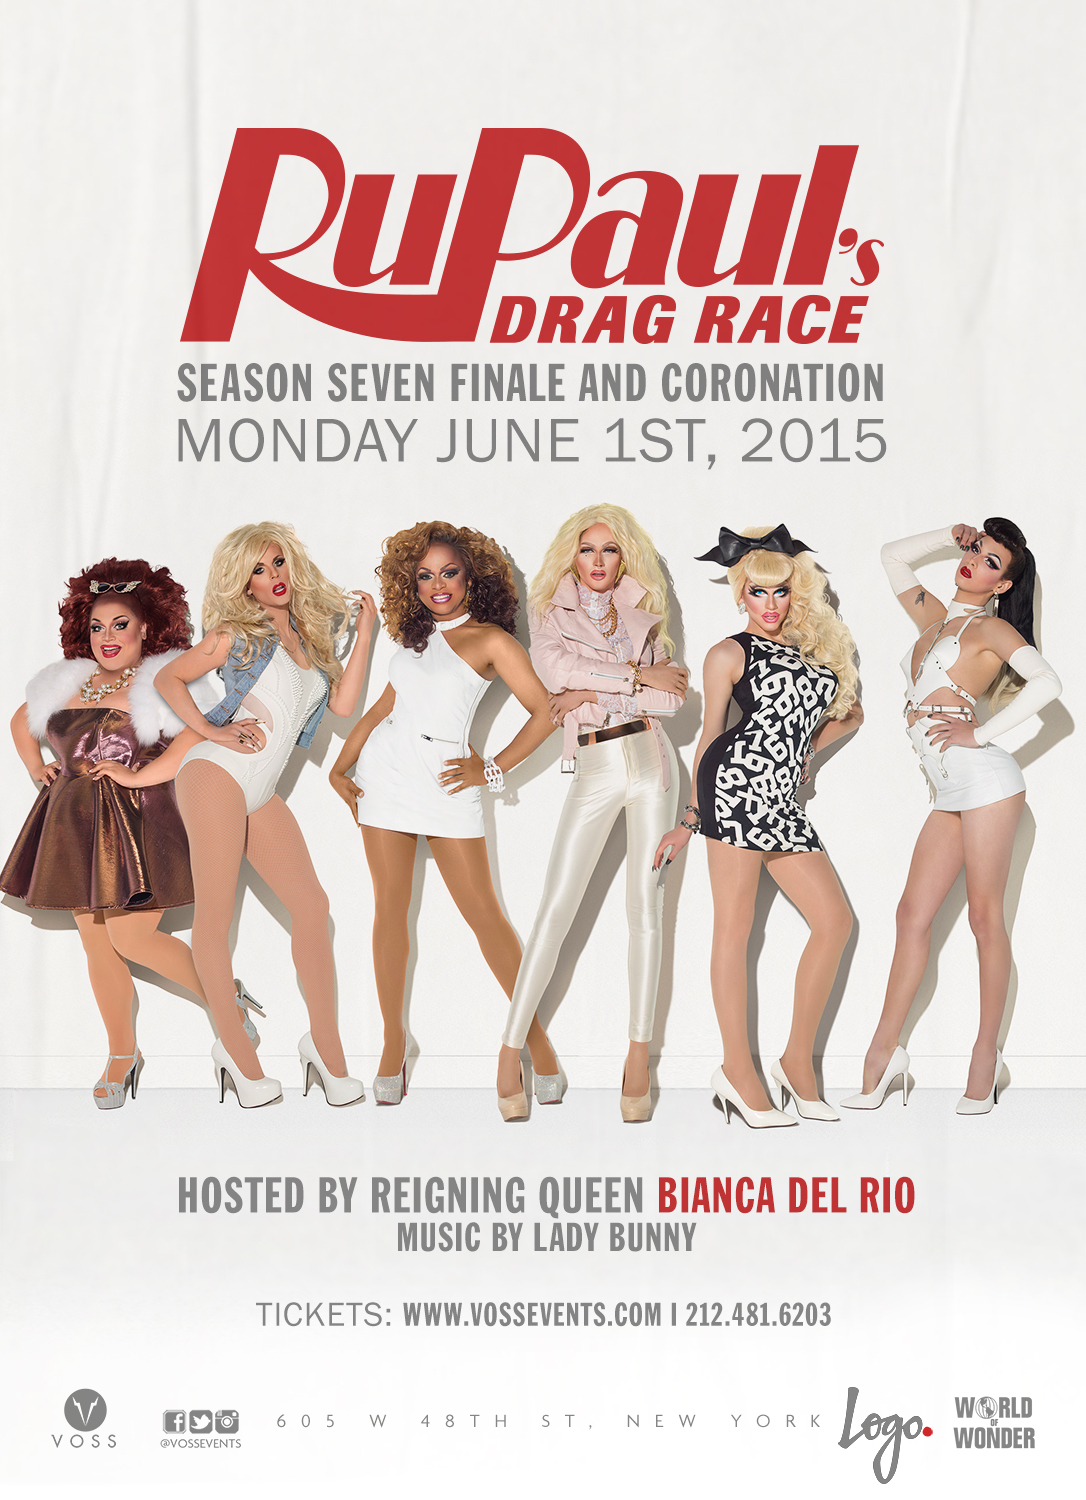 RuPaul's Drag Race Season 7 Winner to be Crowned Live in New York June 1st